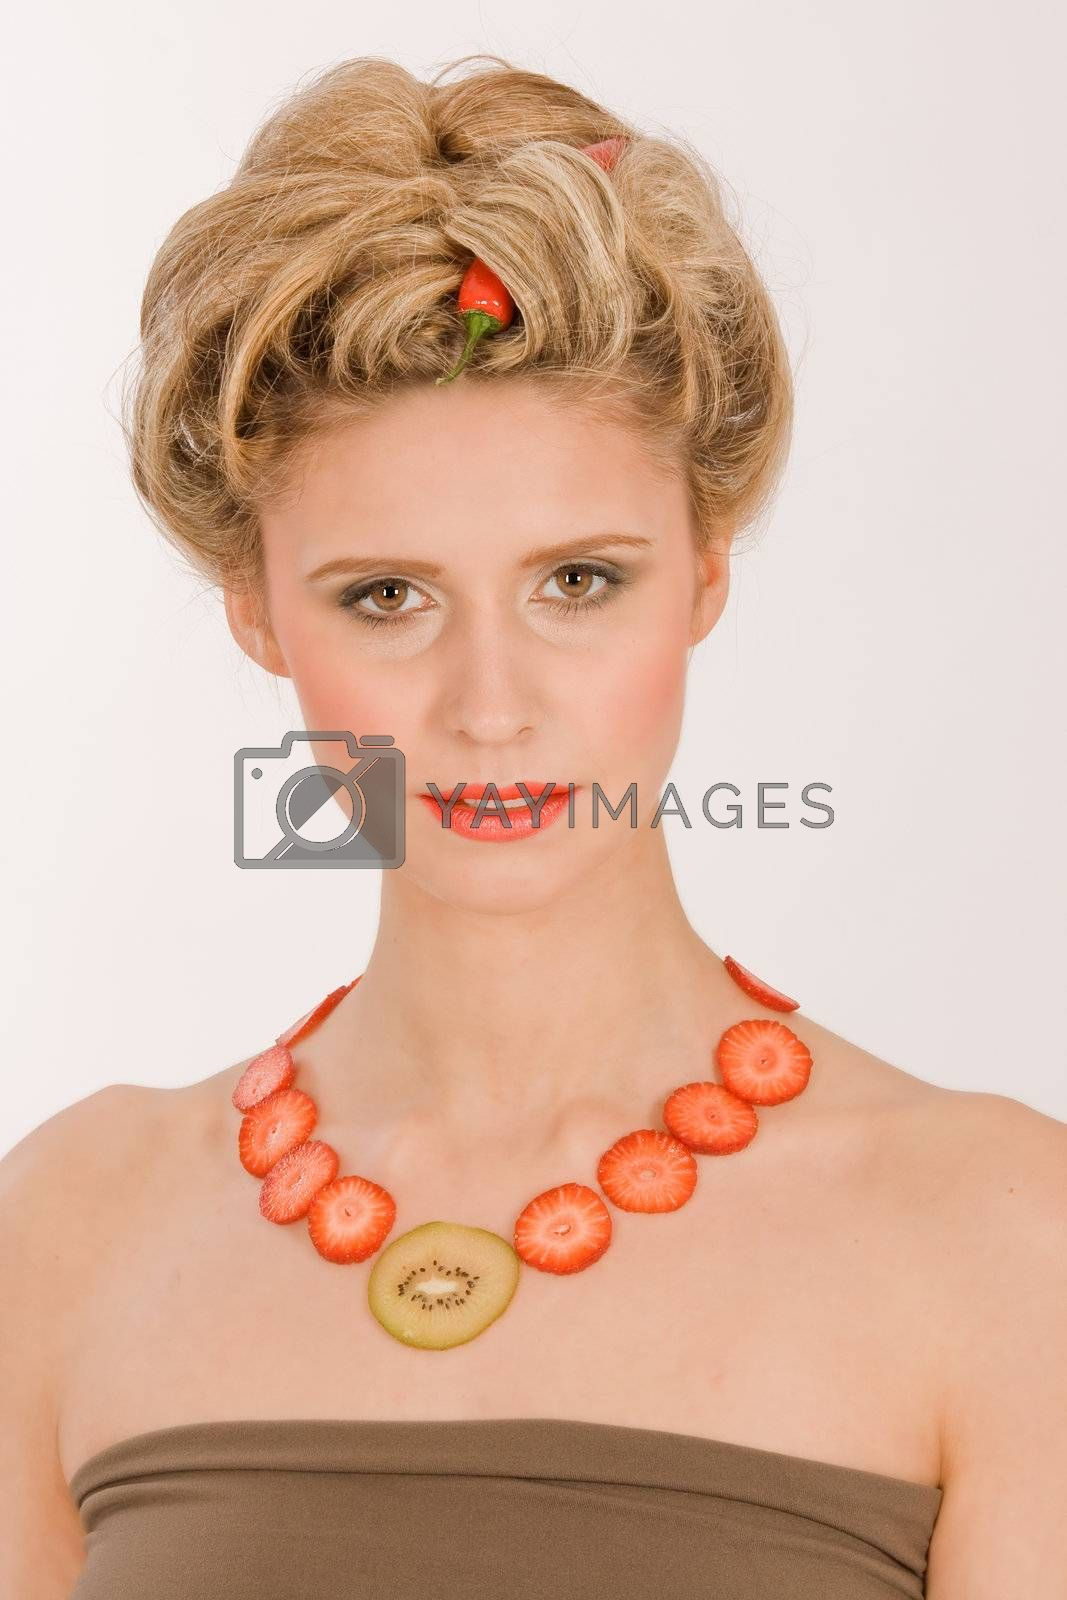 Young woman with a necklace made of strawberries and kiwi